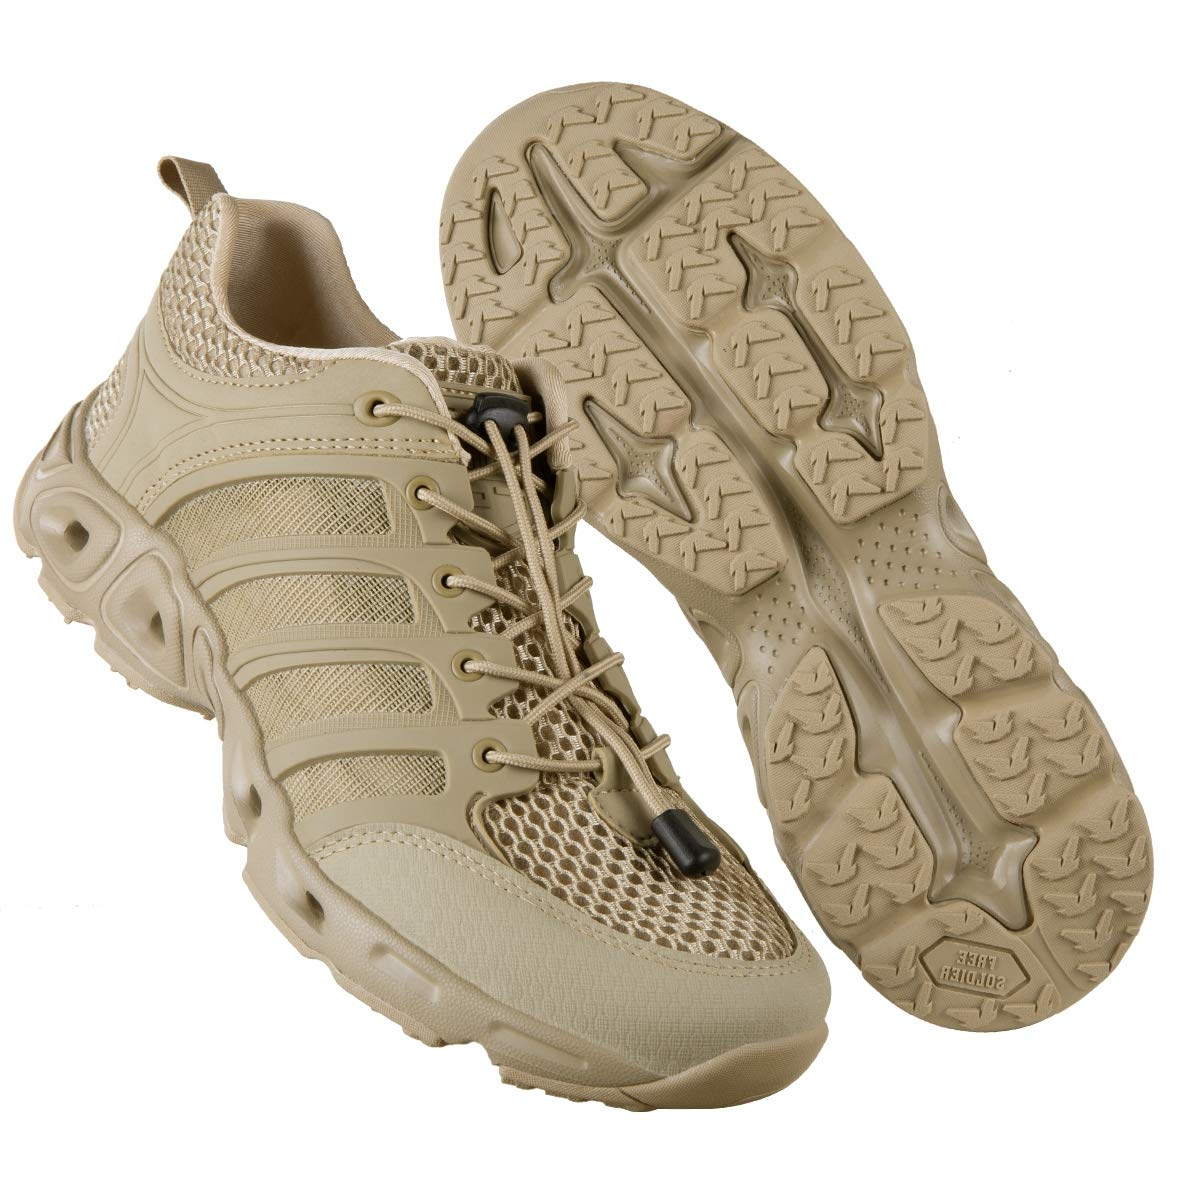 FREE SOLDIER Outdoor Men's Quick Drying Lightweight Sport Hiking Water Shoes (Sand 10.5 M US)